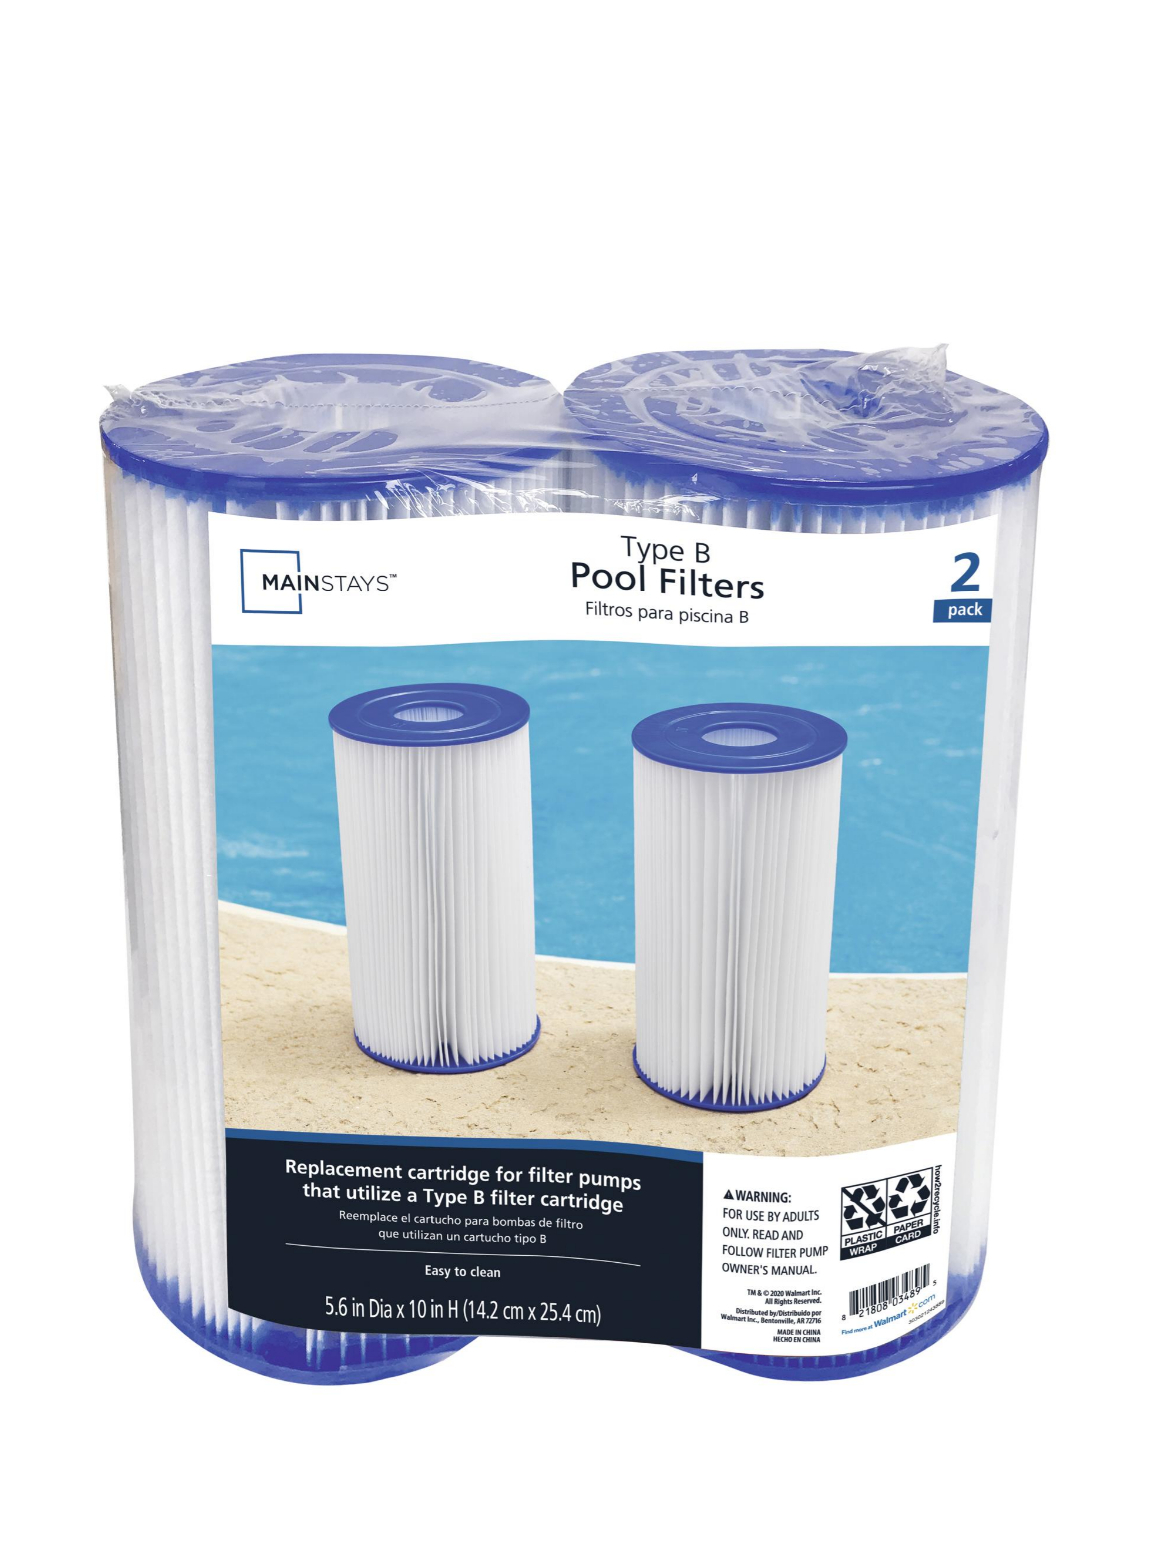 Mainstays Type IV, B Replacement Pool Filter Cartridge, 5.6 in x 10 in - 2 Pack